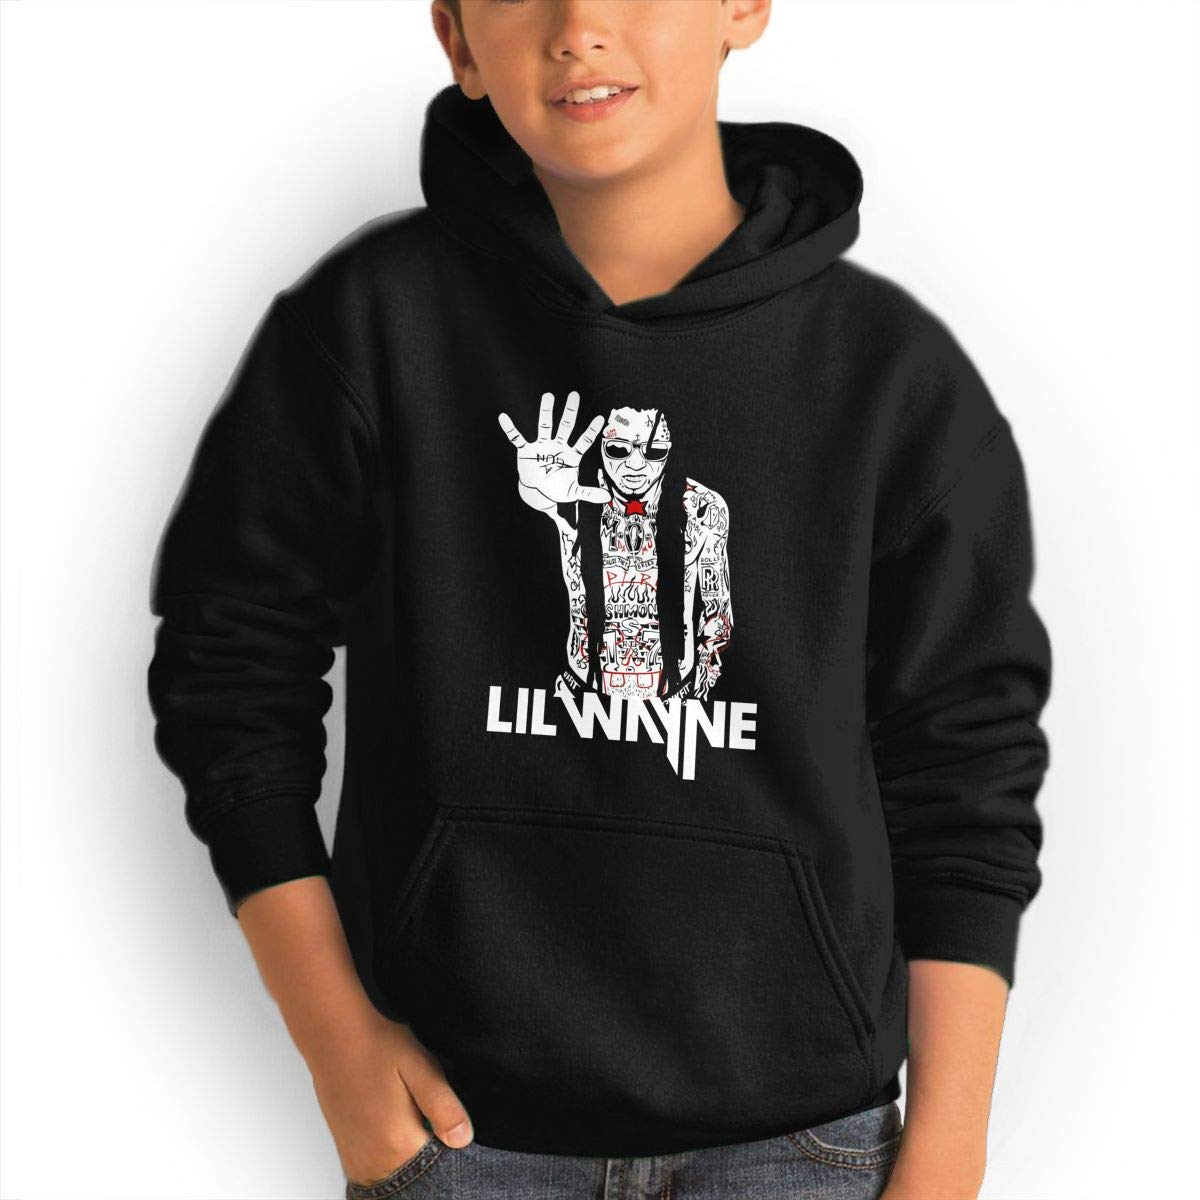 Teen S Lil Wayne Hooded Cool Aesthetic Pullover For Girls Ts